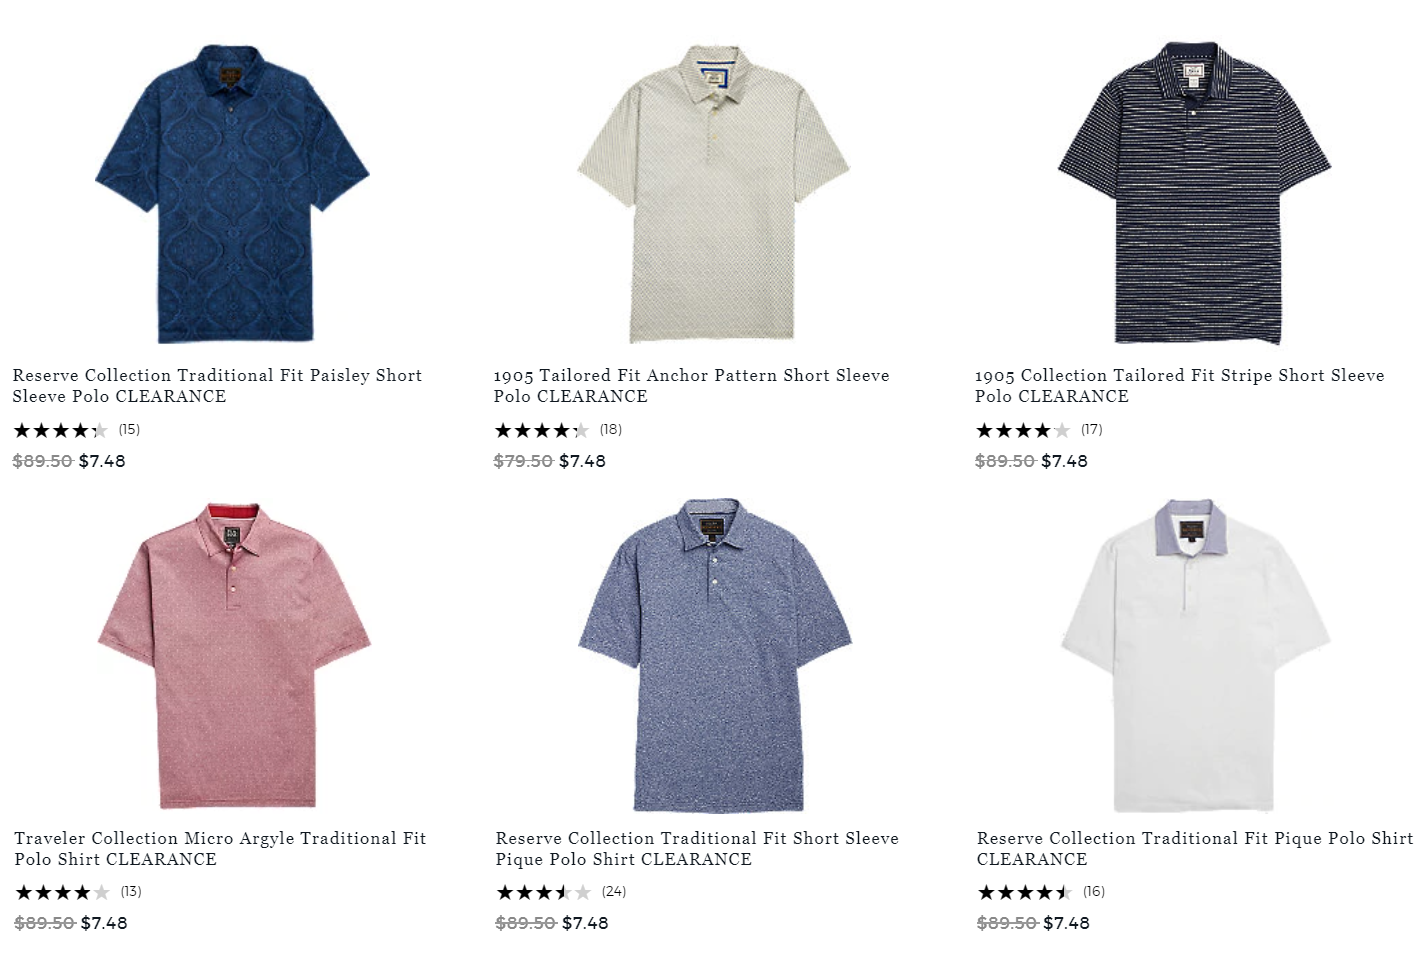 b1f52a179354 Jos. A. Bank Men's Polo Shirts Only $7.48 + Free Shipping. Sizes From Small  through 2XL and larger tall as well. Over 50 to choose from